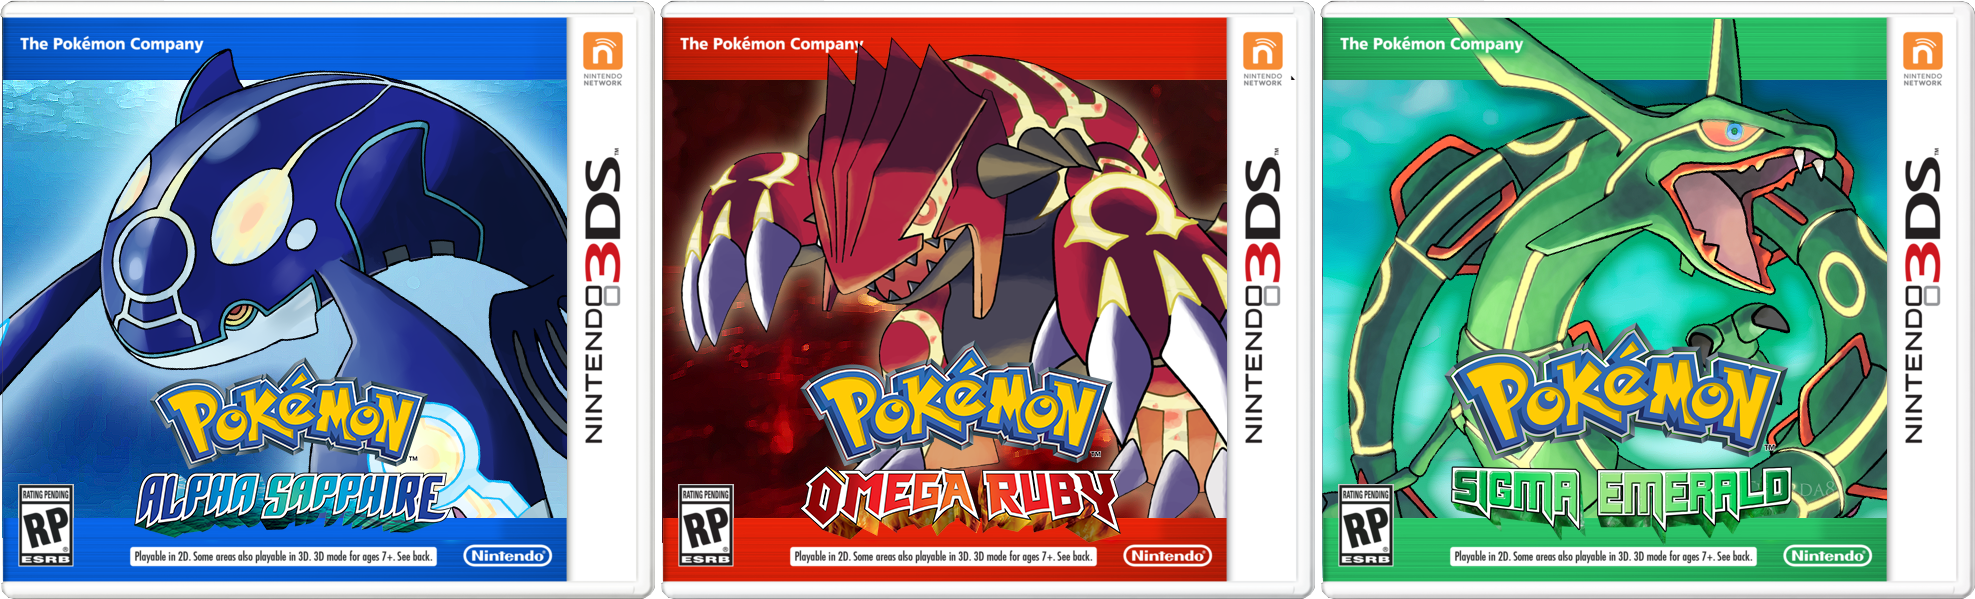 pokemon omega ruby gba download rom